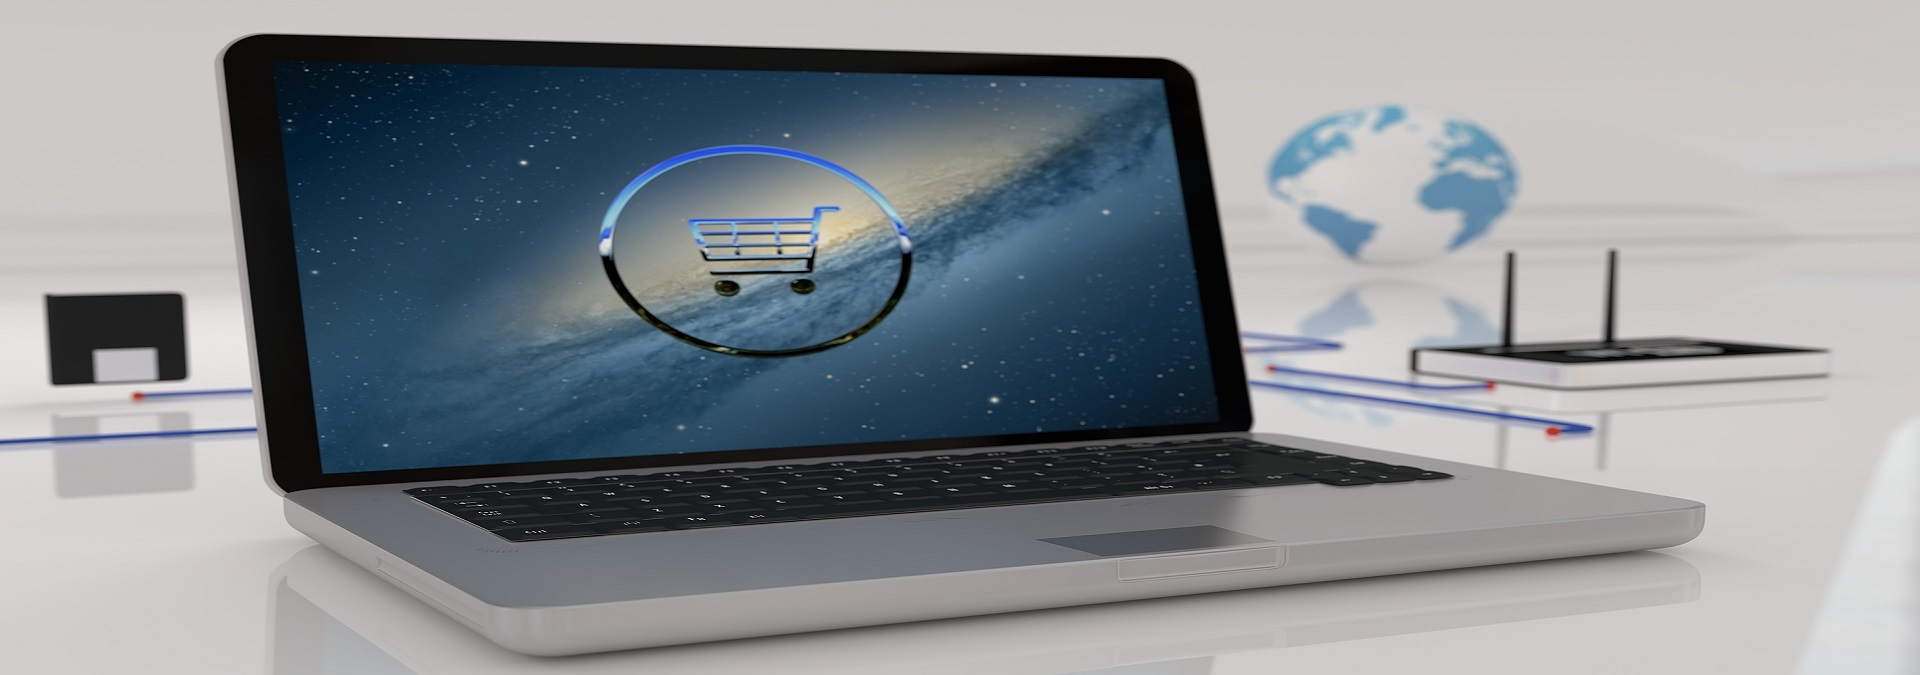 E-commerce applications influence the shopping trends of the future.